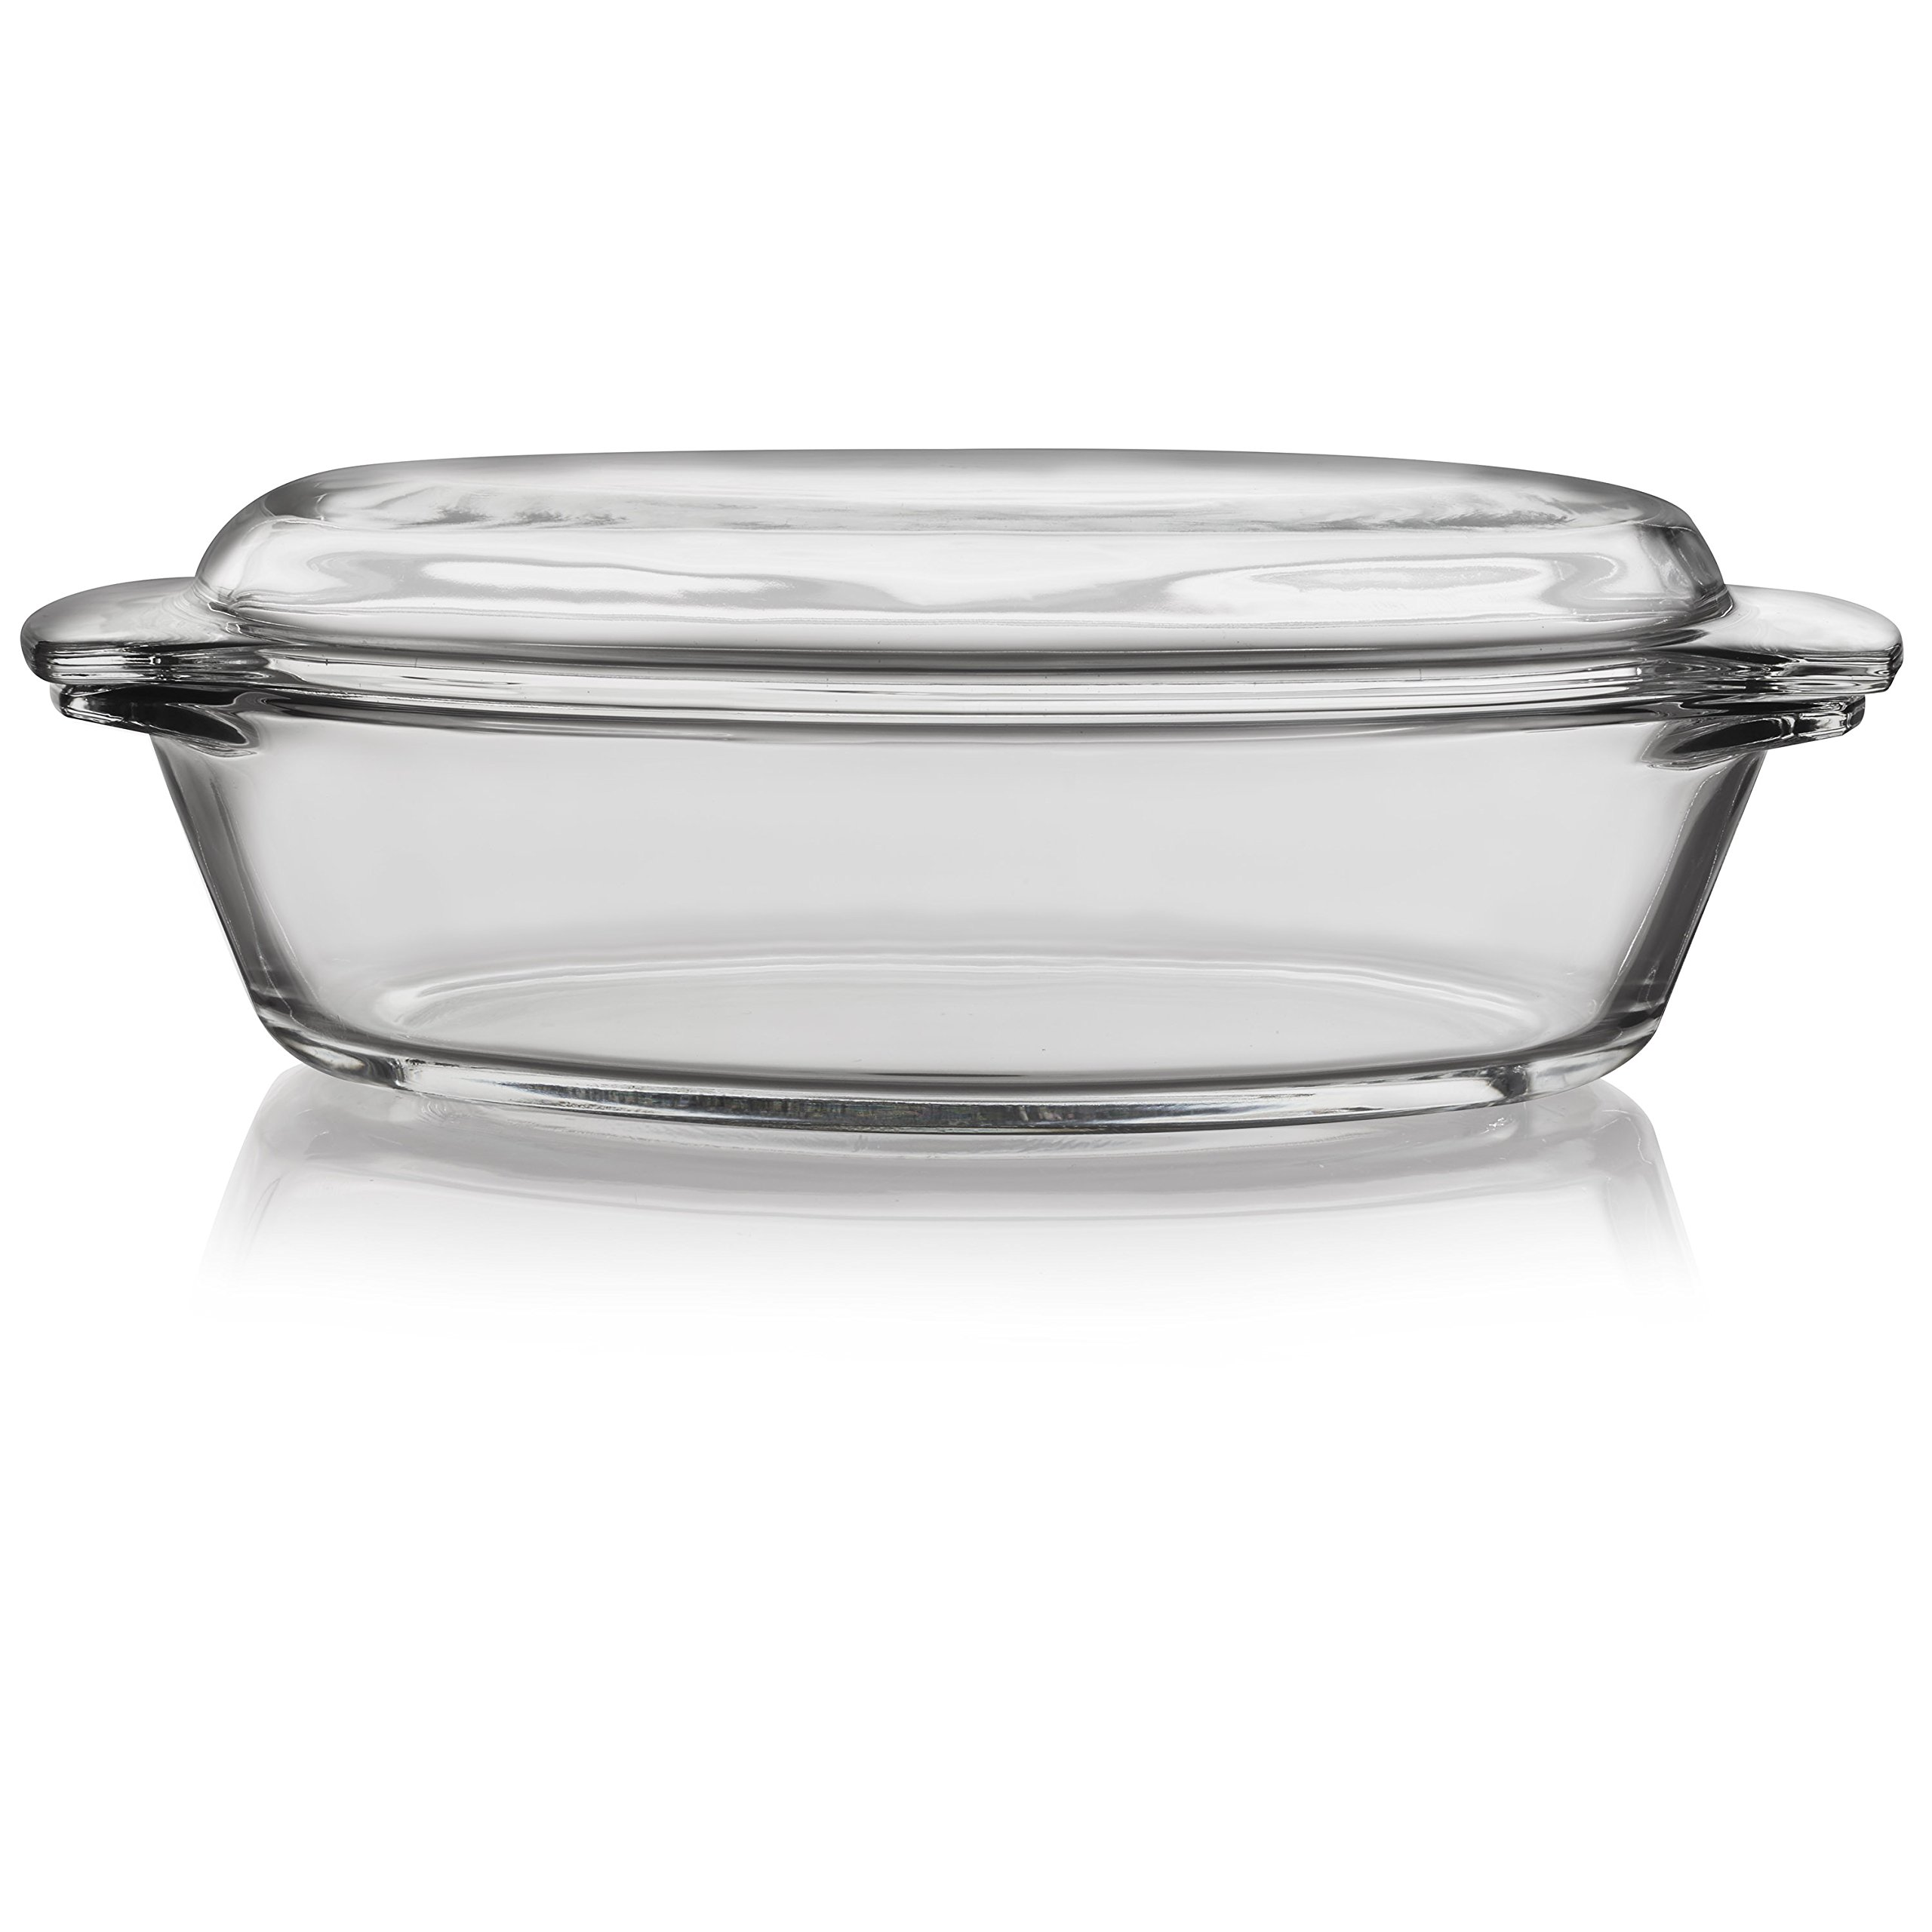 Libbey Baker's Basics Glass Oval Casserole with Cover